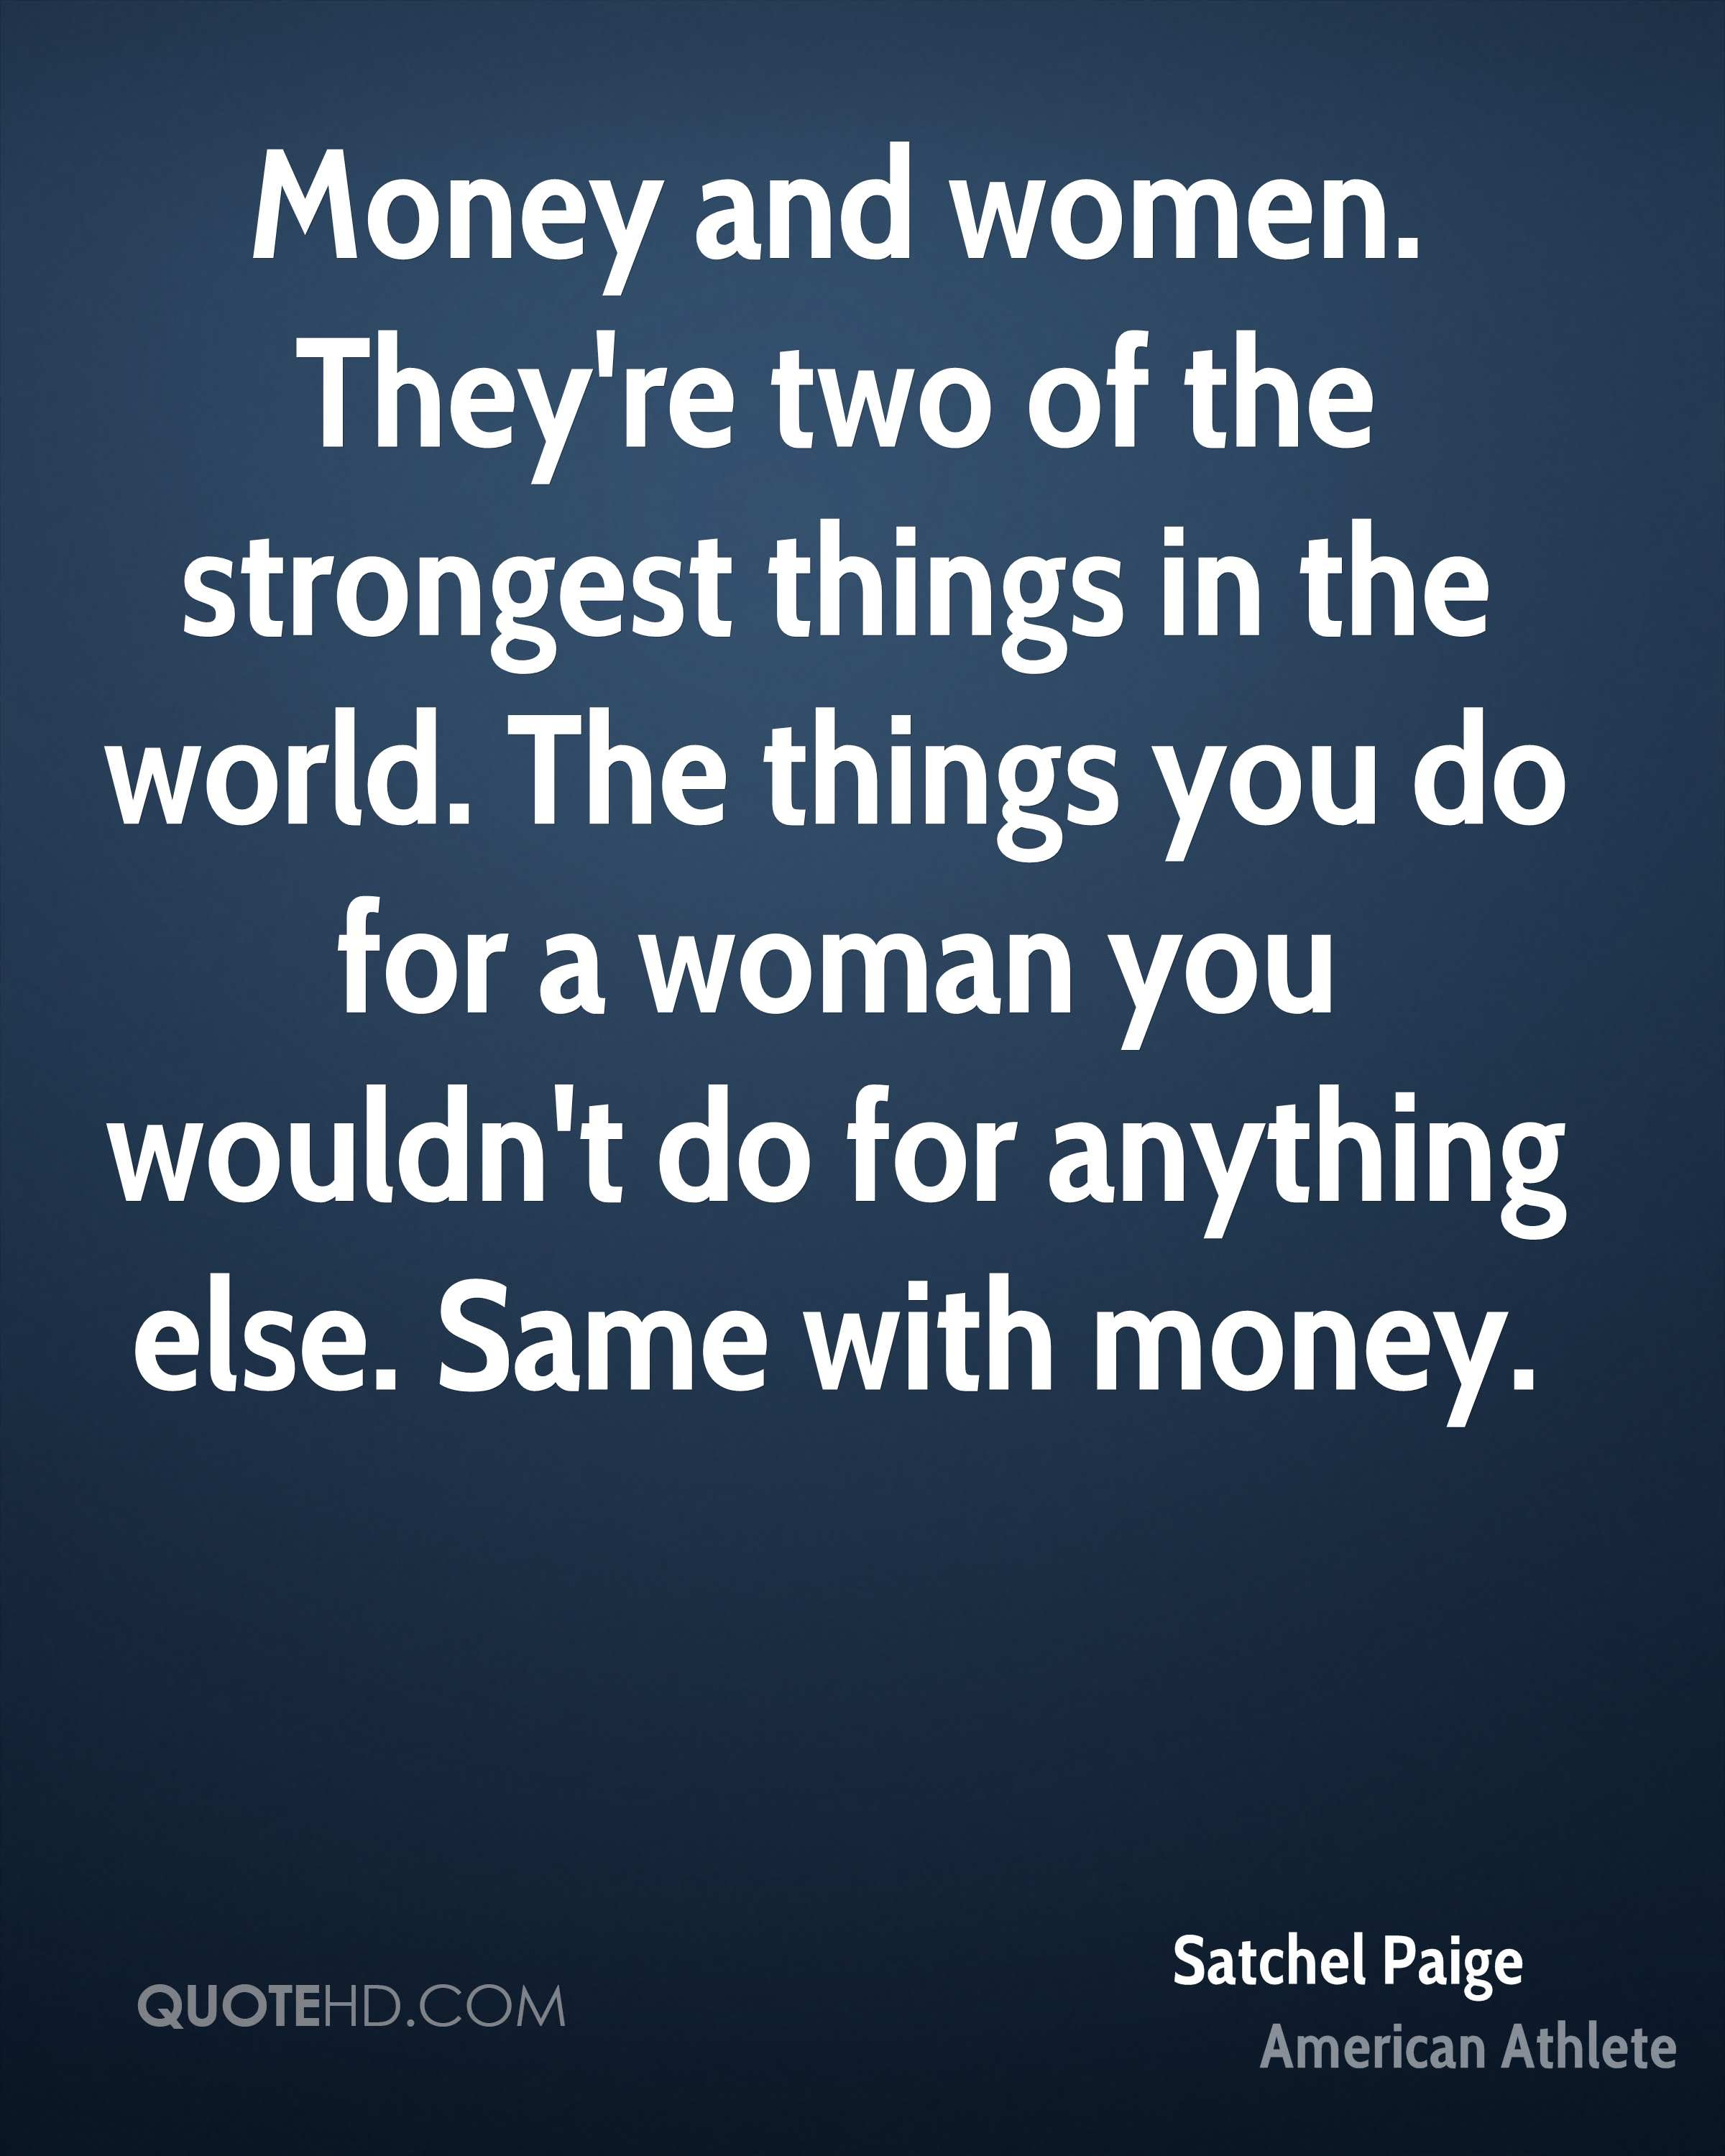 Satchel Paige Women Quotes Quotehd